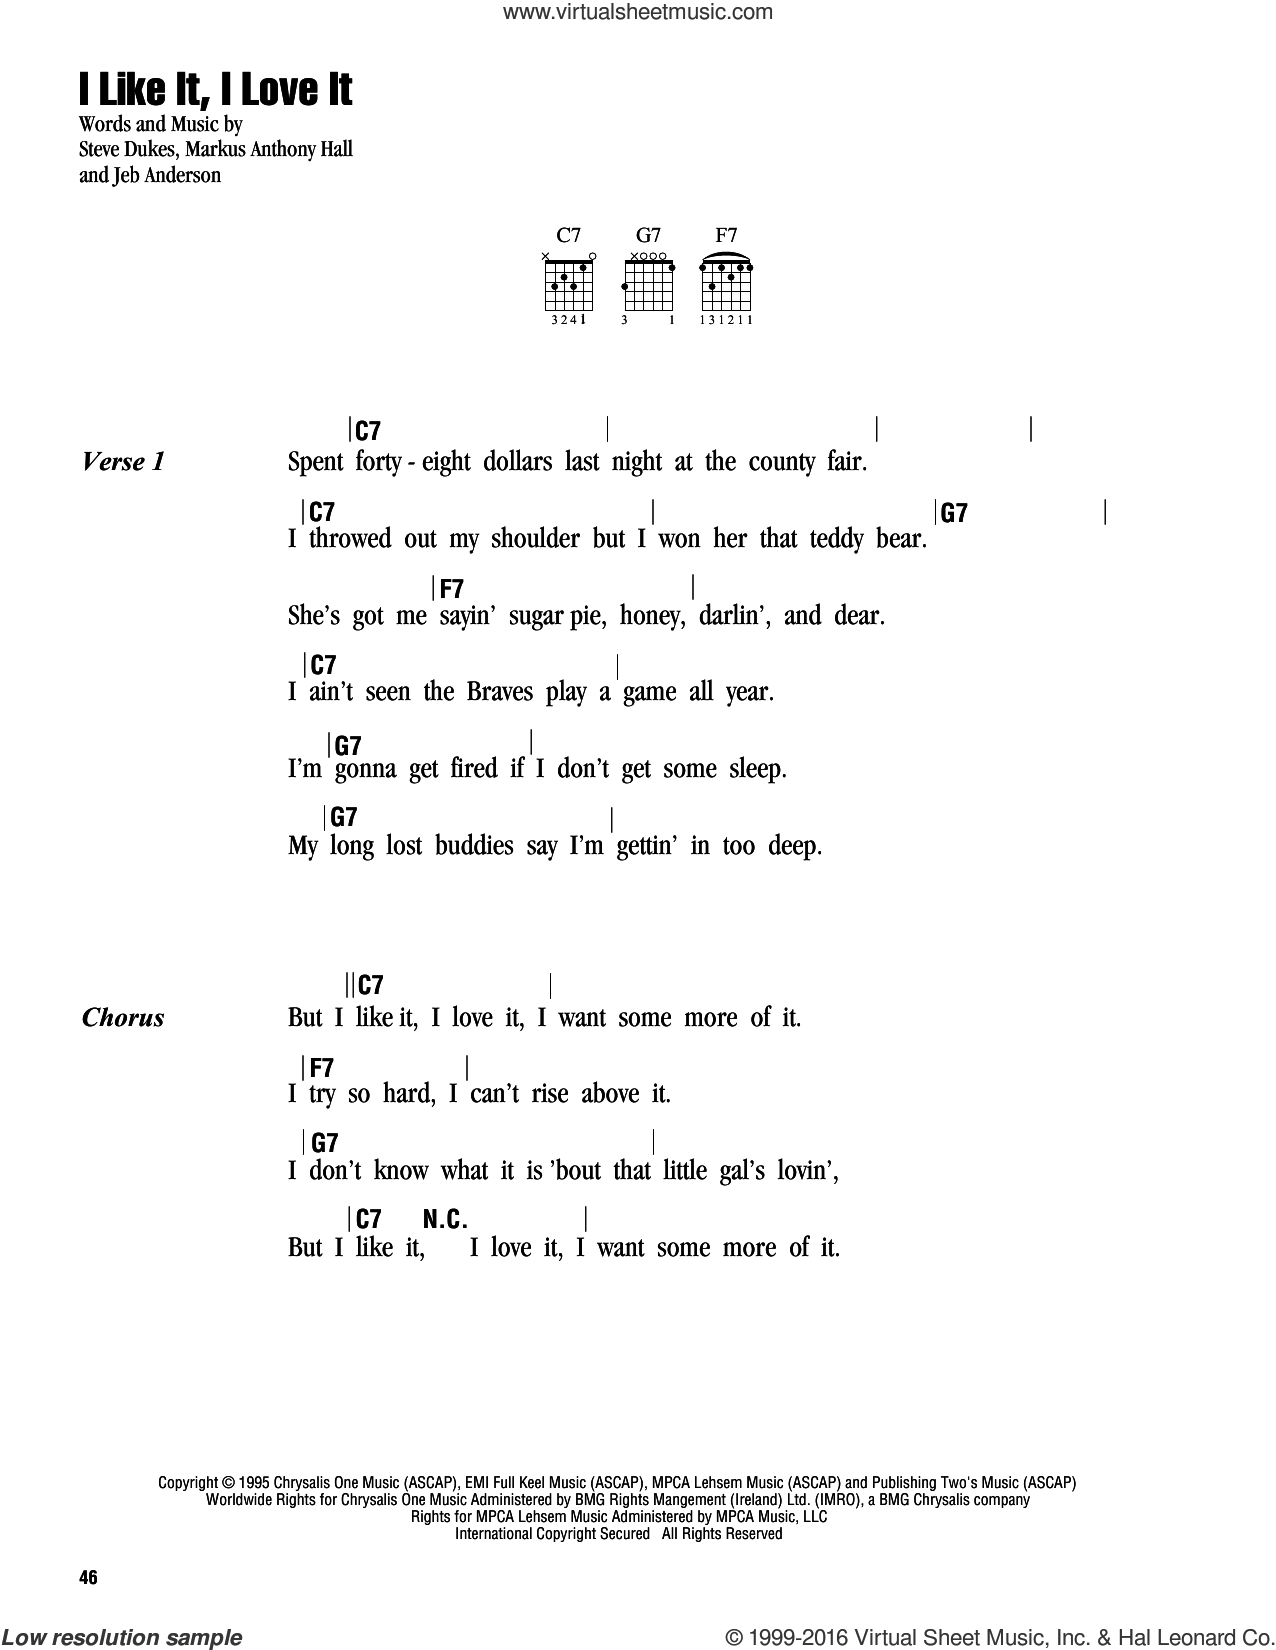 I Like It, I Love It sheet music for guitar (chords) by Tim McGraw, Jeb Anderson, Markus Anthony Hall and Steve Dukes, intermediate